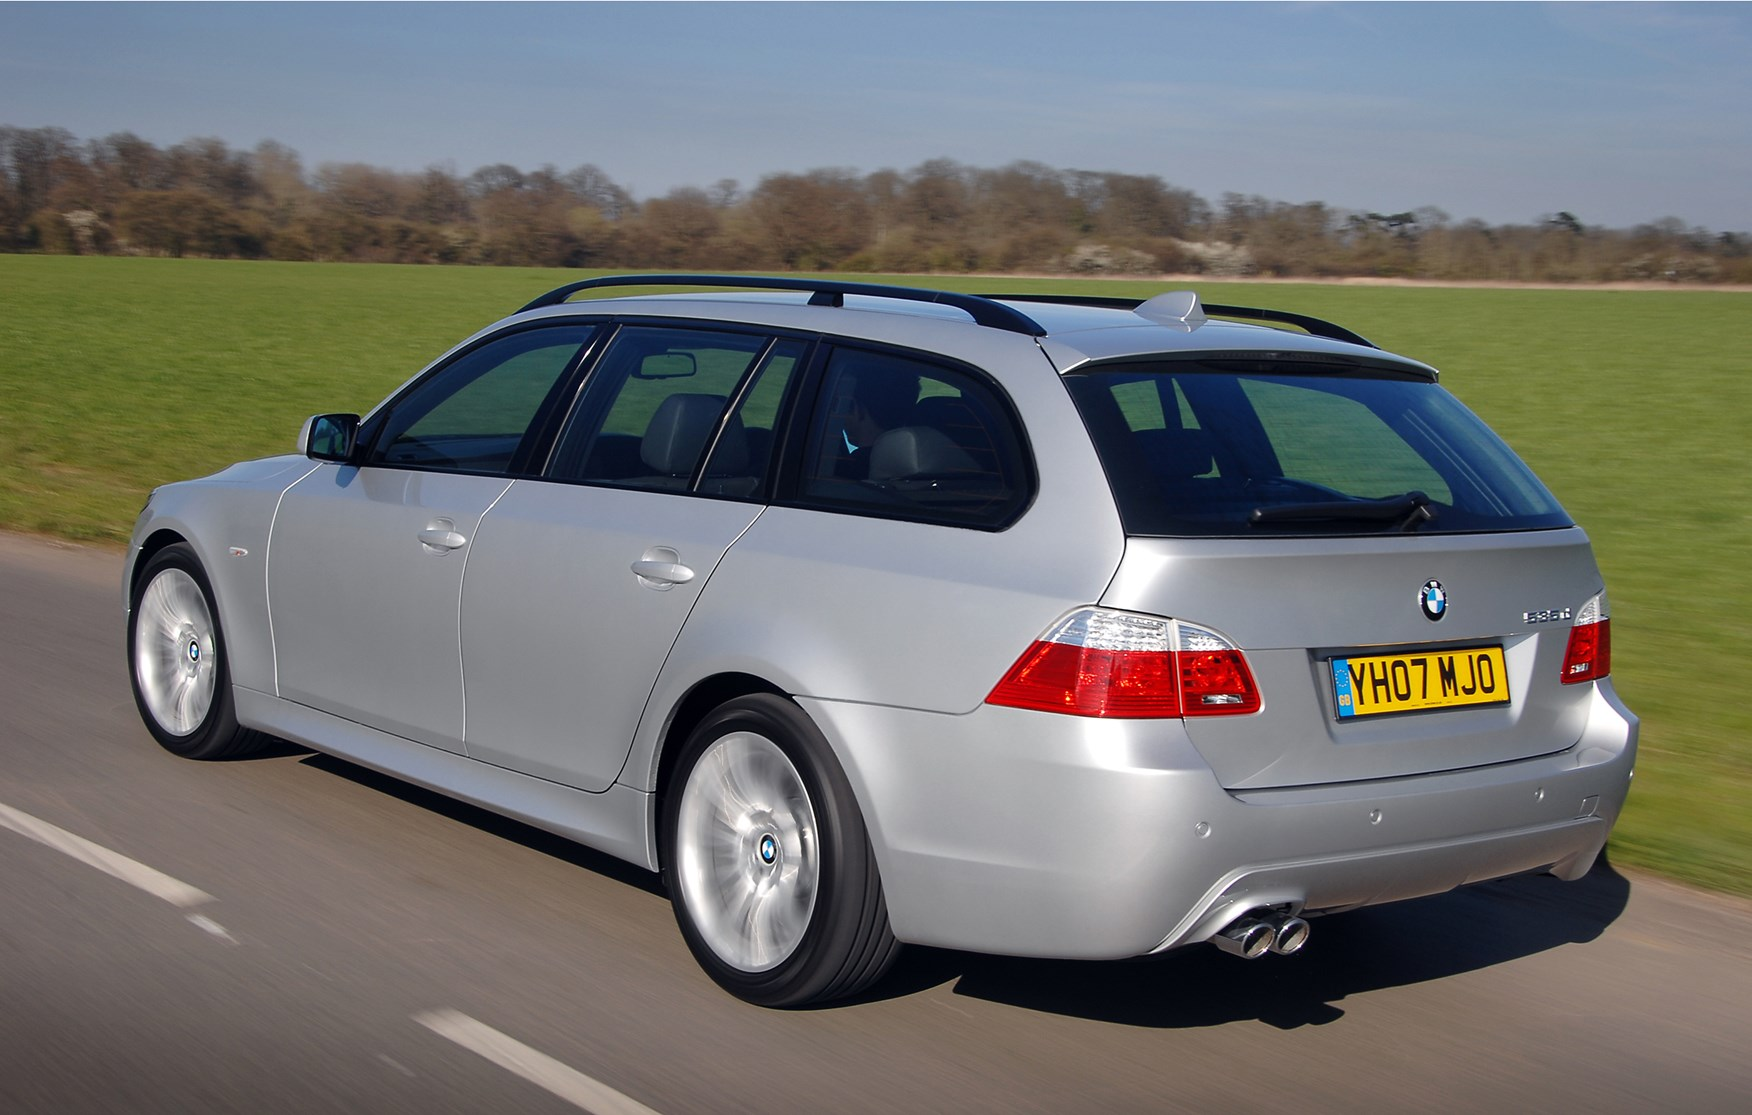 Used BMW 5-Series Touring (2003 - 2010) Review | Parkers